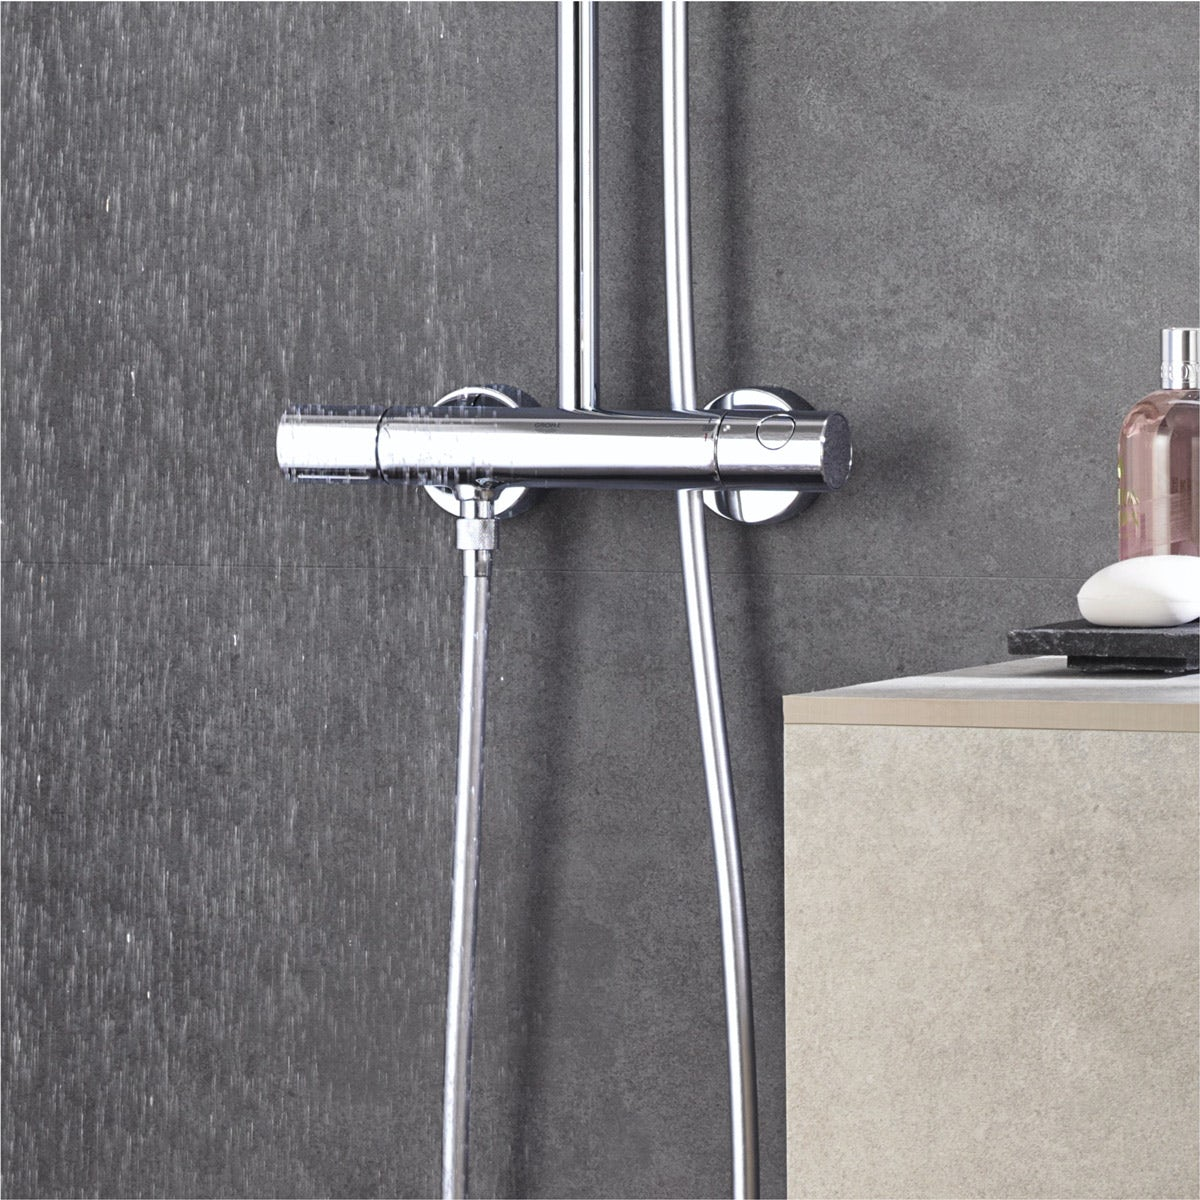 grohe euphoria xxl 210 shower system. Black Bedroom Furniture Sets. Home Design Ideas